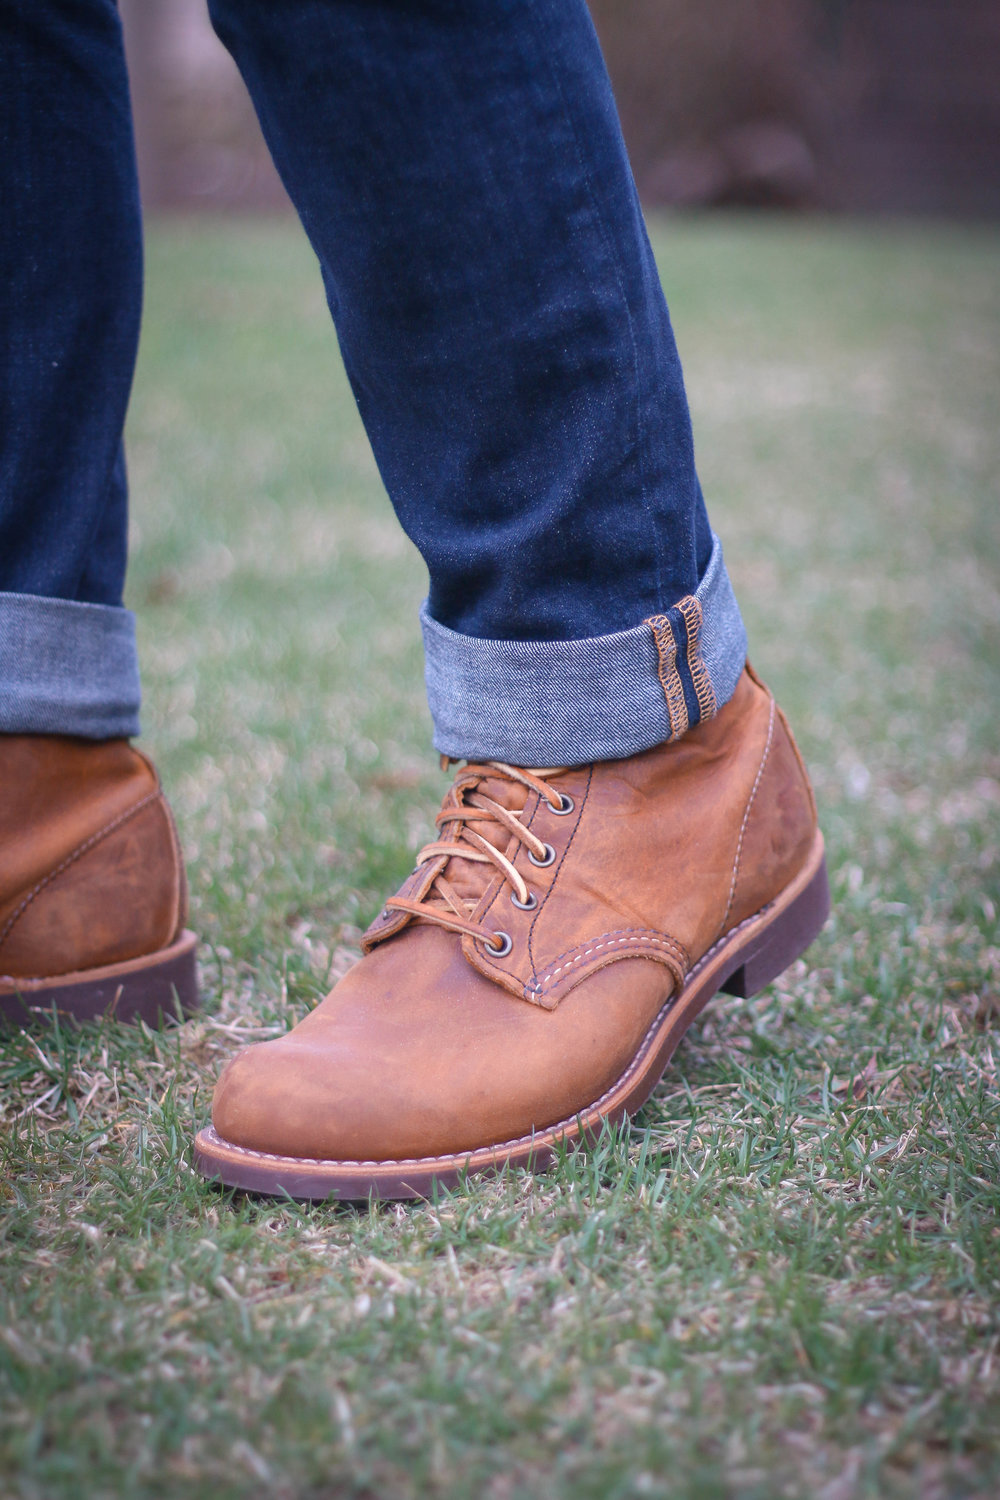 The Red Wing Blacksmiths in Copper Rough and Tough, with Blackrock Leather Laces